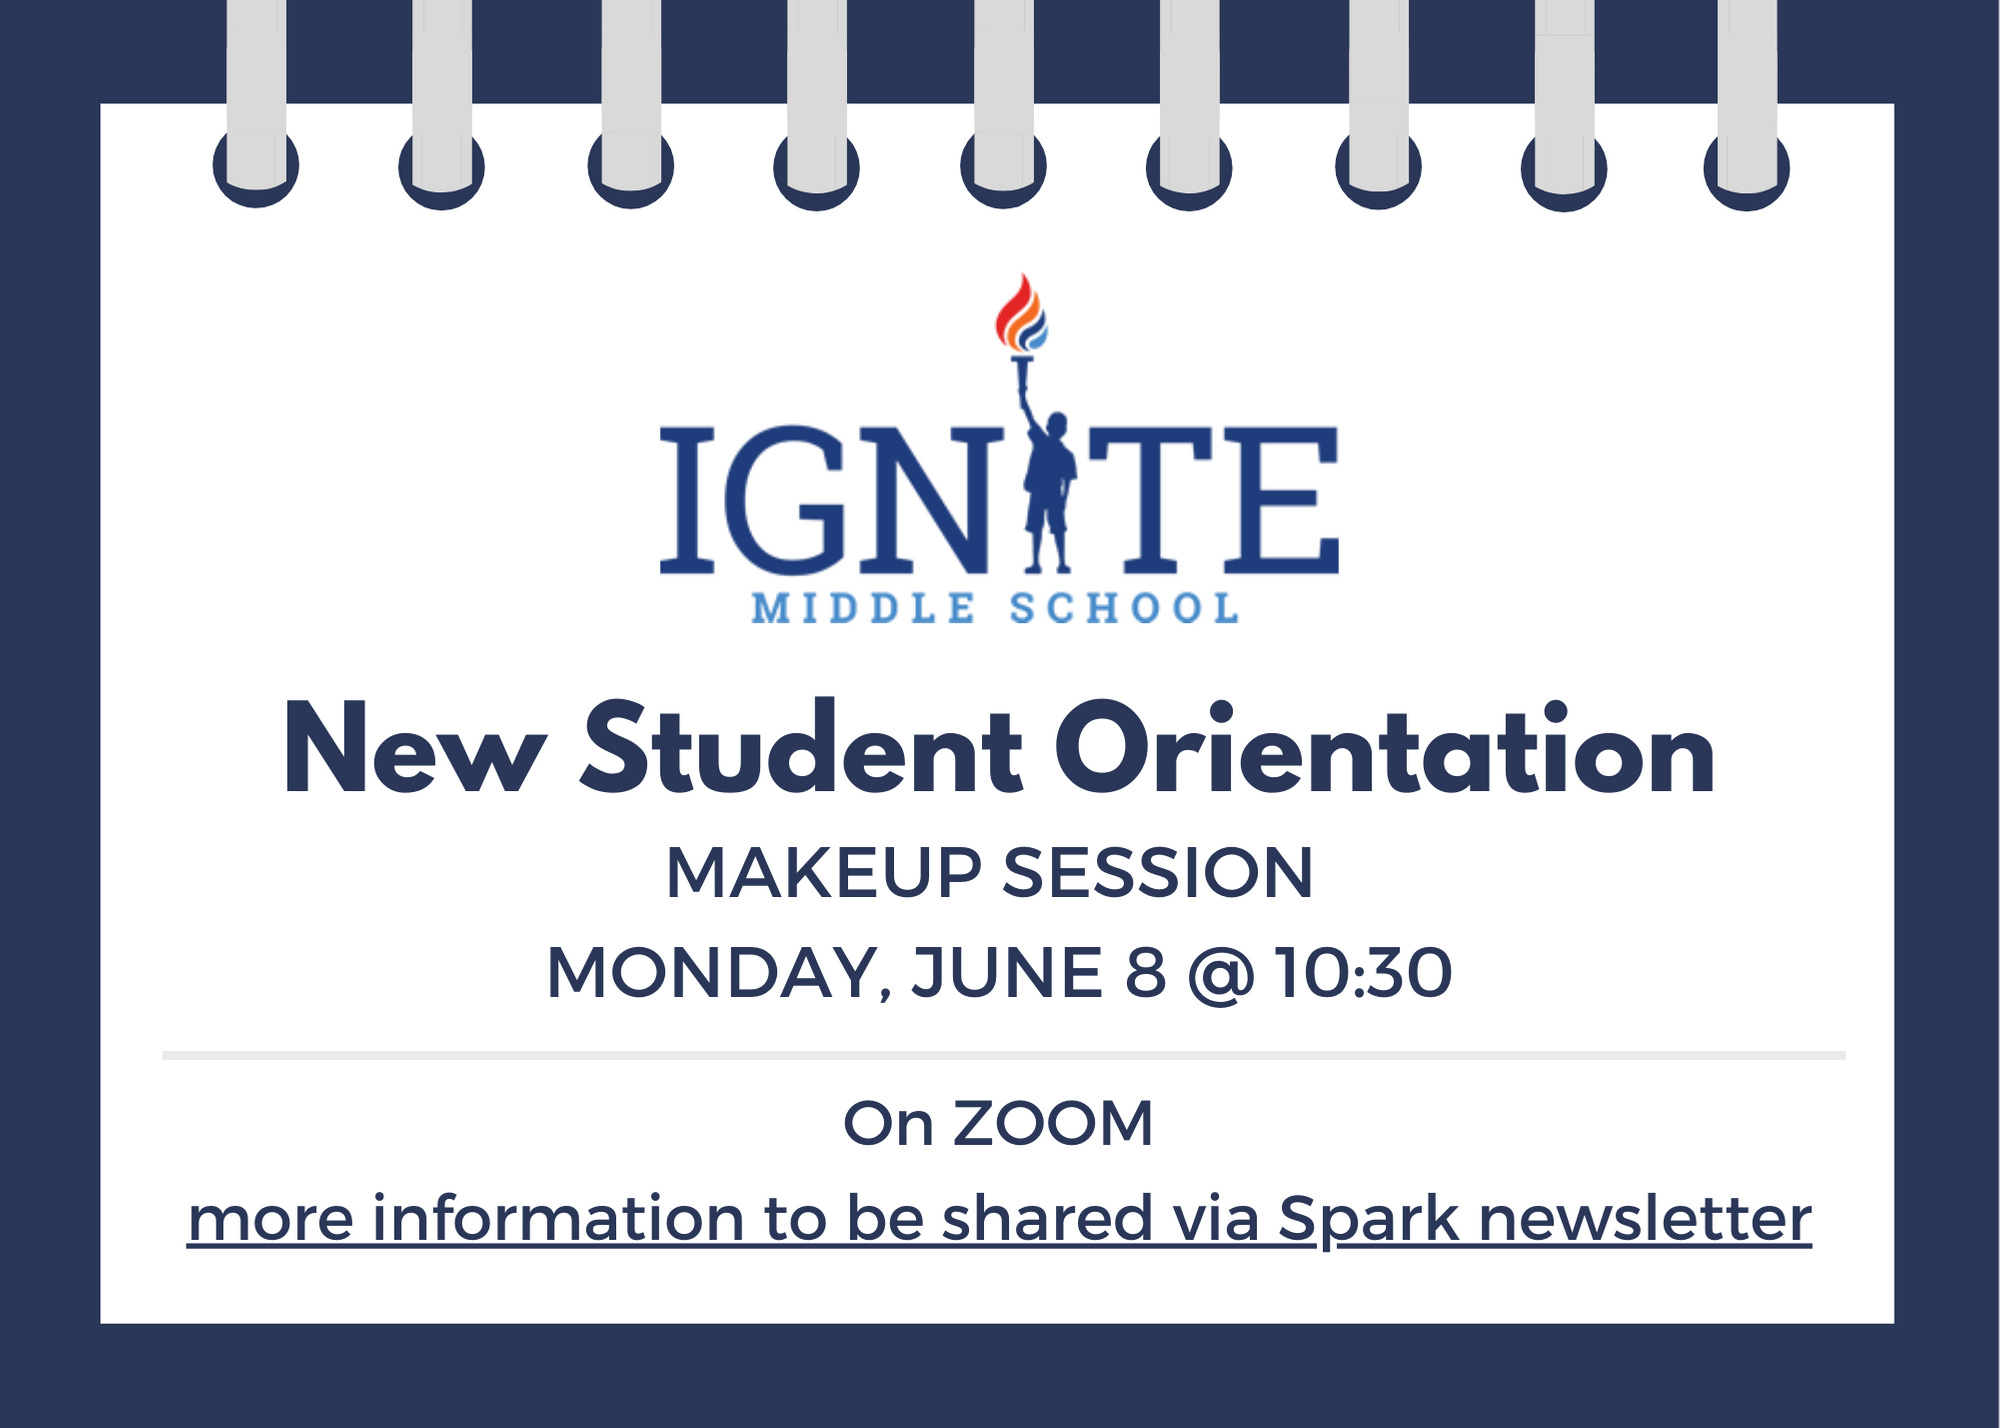 New Student Orientation Makeup DAte